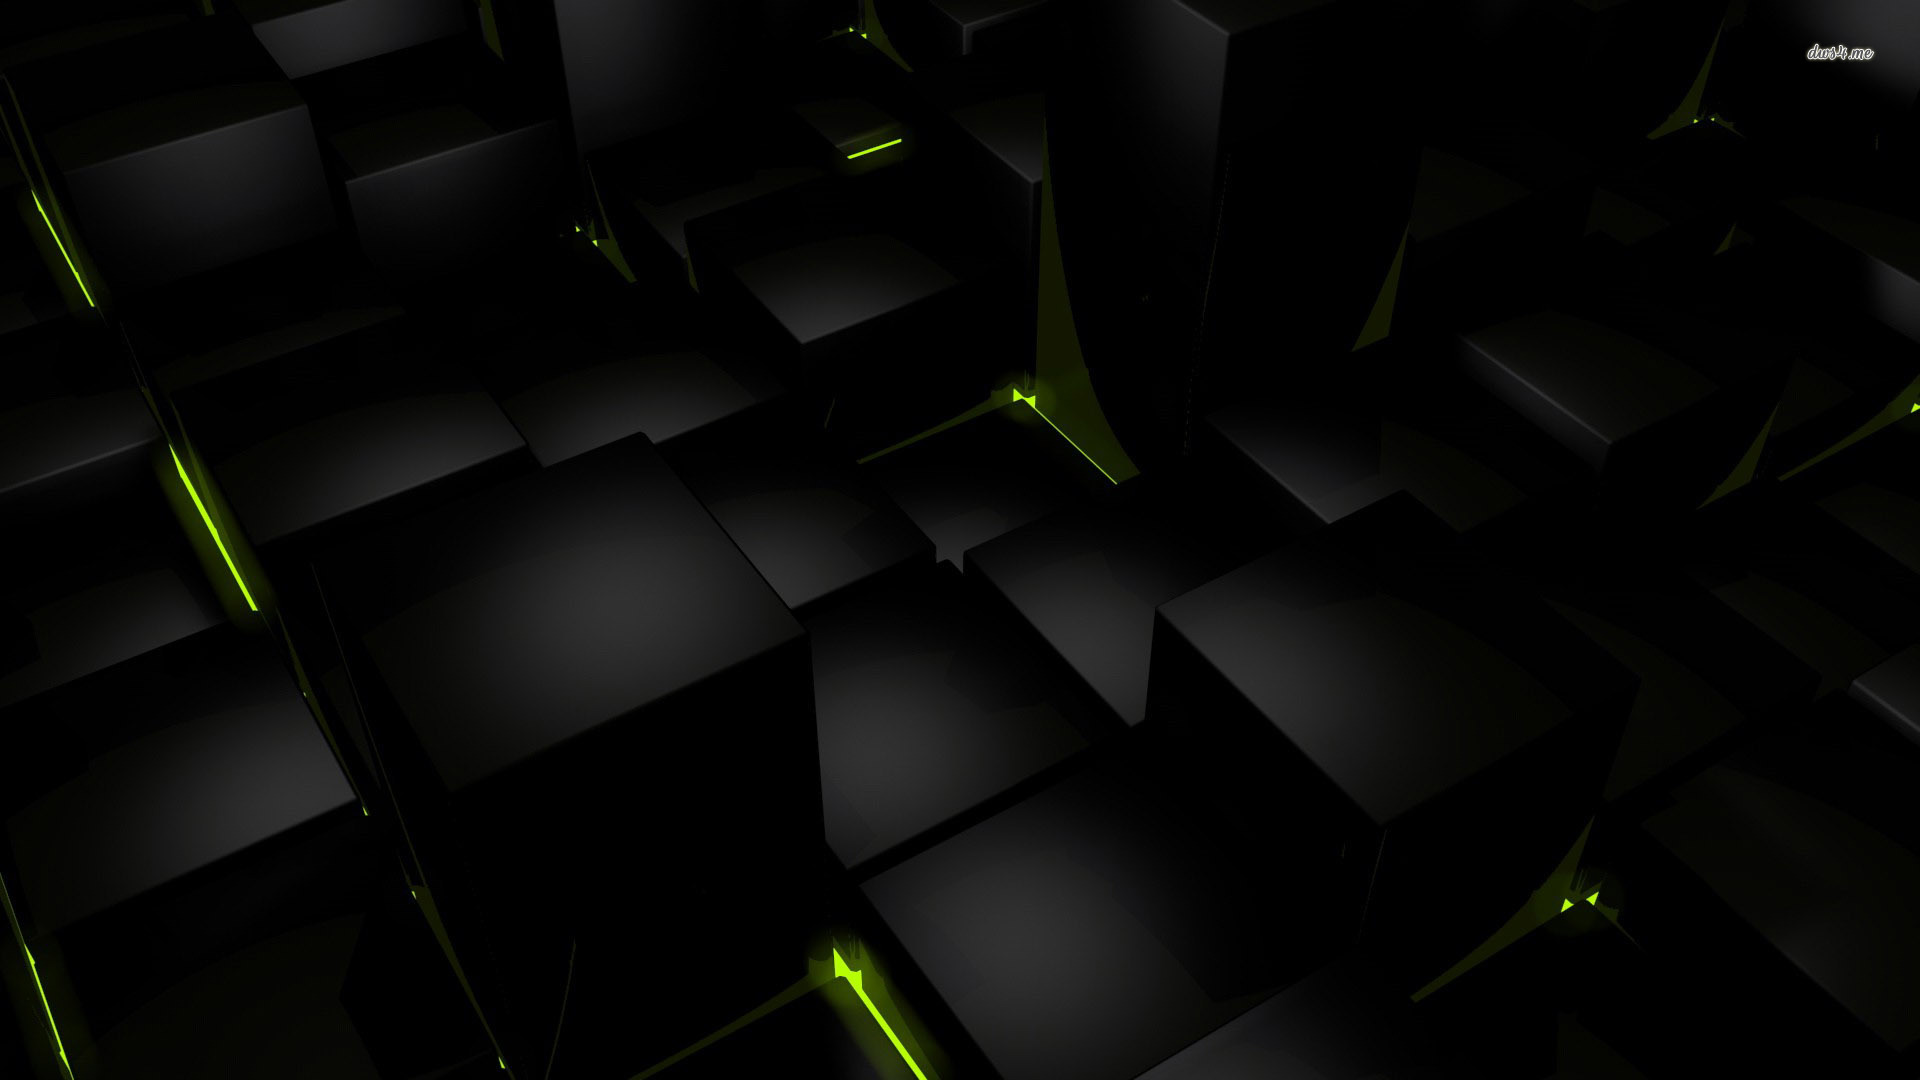 Collection of Black And Green Wallpaper on HDWallpapers